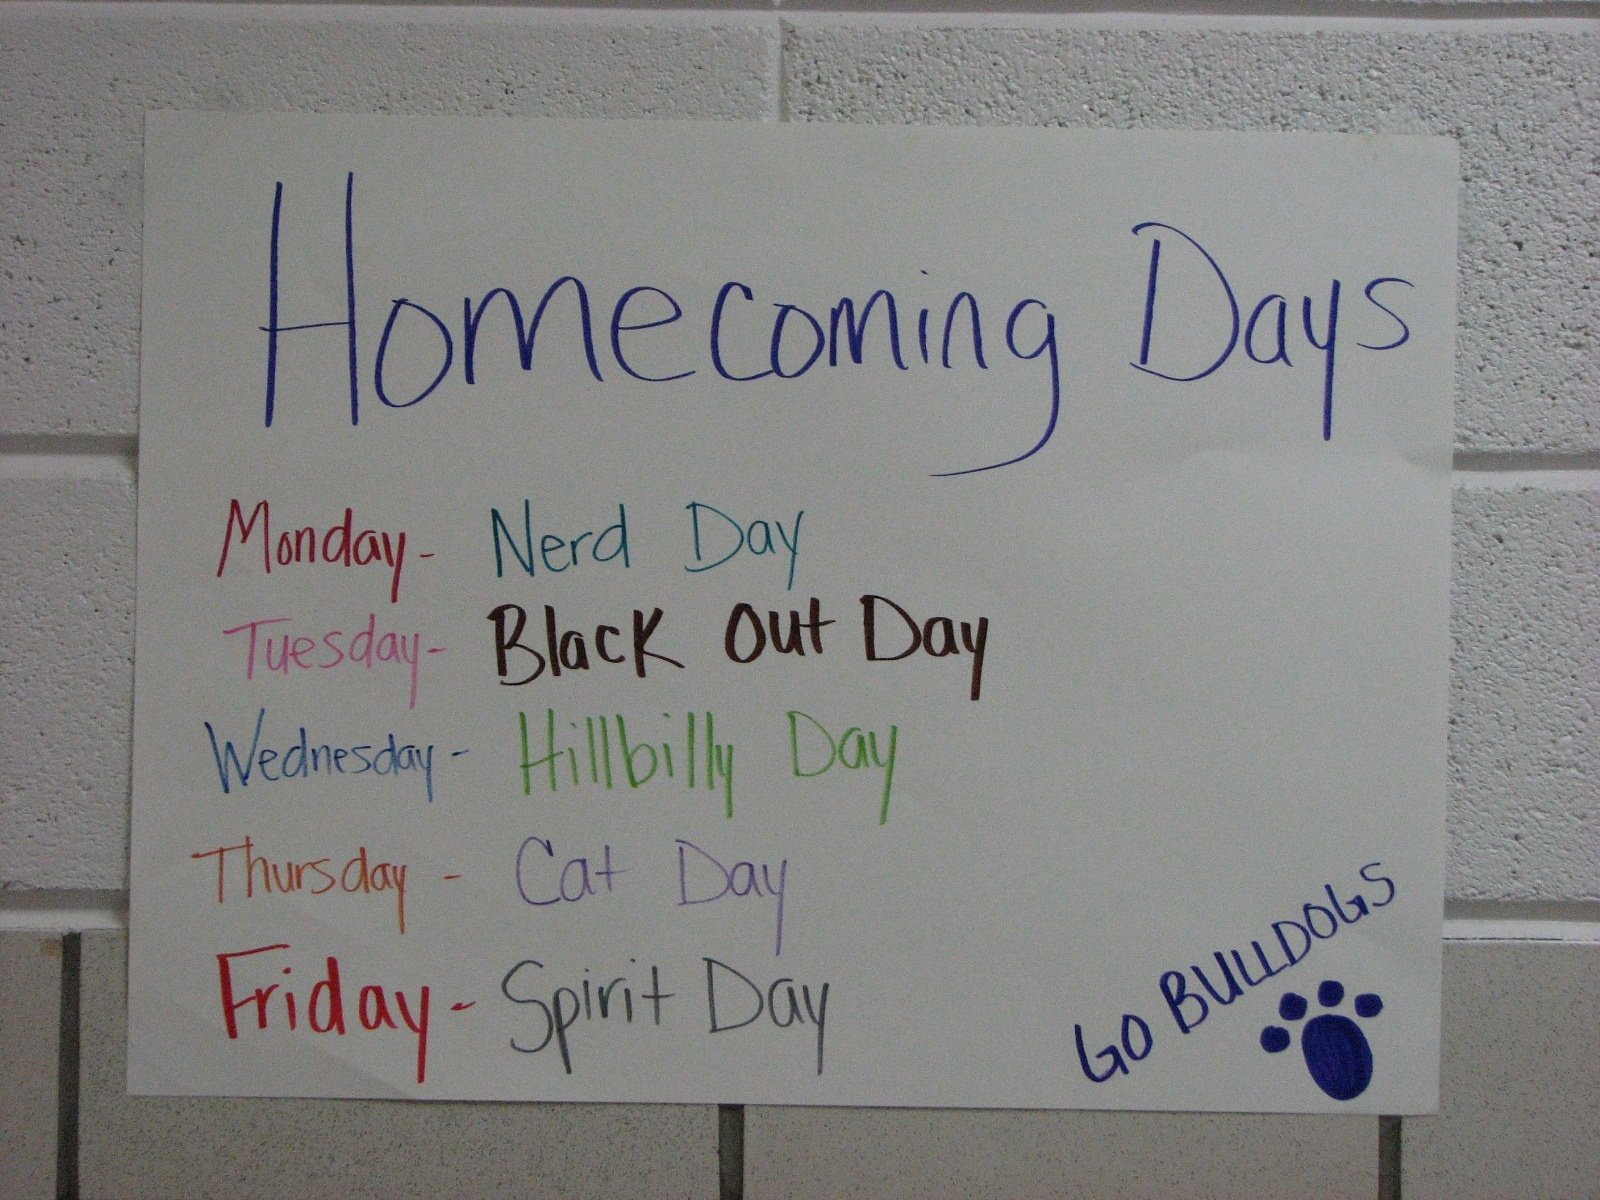 10 Perfect Homecoming Week Dress Up Ideas mr mallorys stuff homecoming dress up days next week 2021